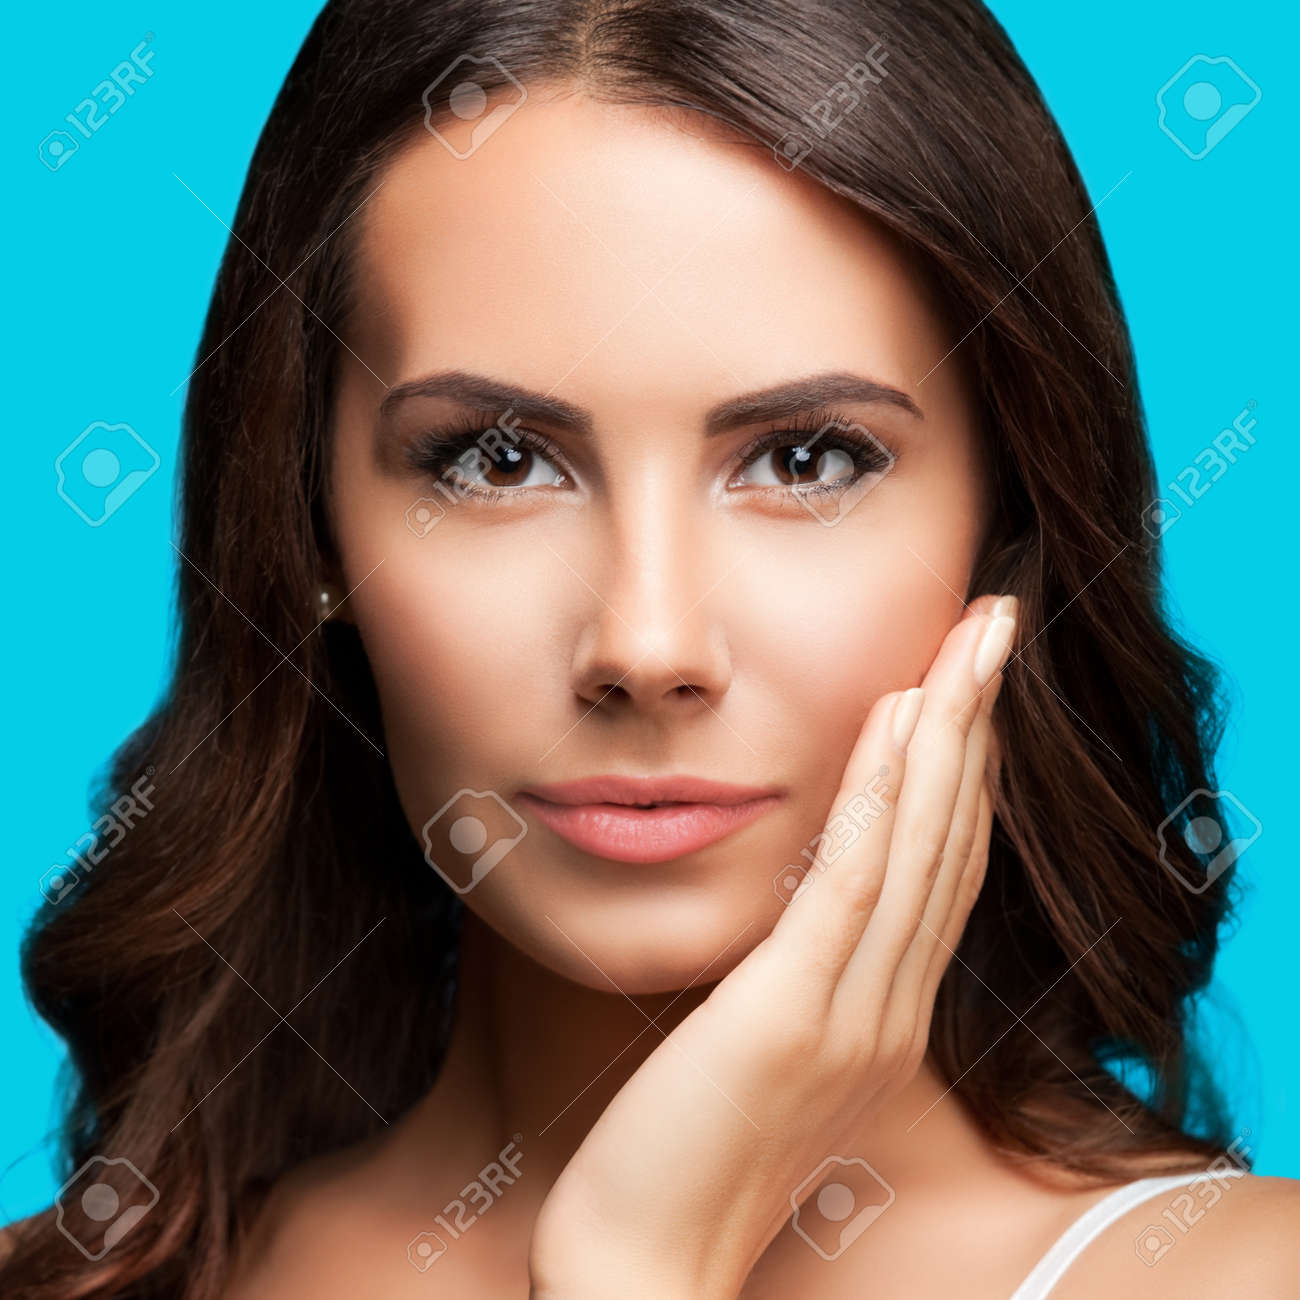 Portrait of beautiful woman in white casual tank top, over aqua blue green background. Brunette lovely girl at studio fashion concept. Square composition image. - 171953424